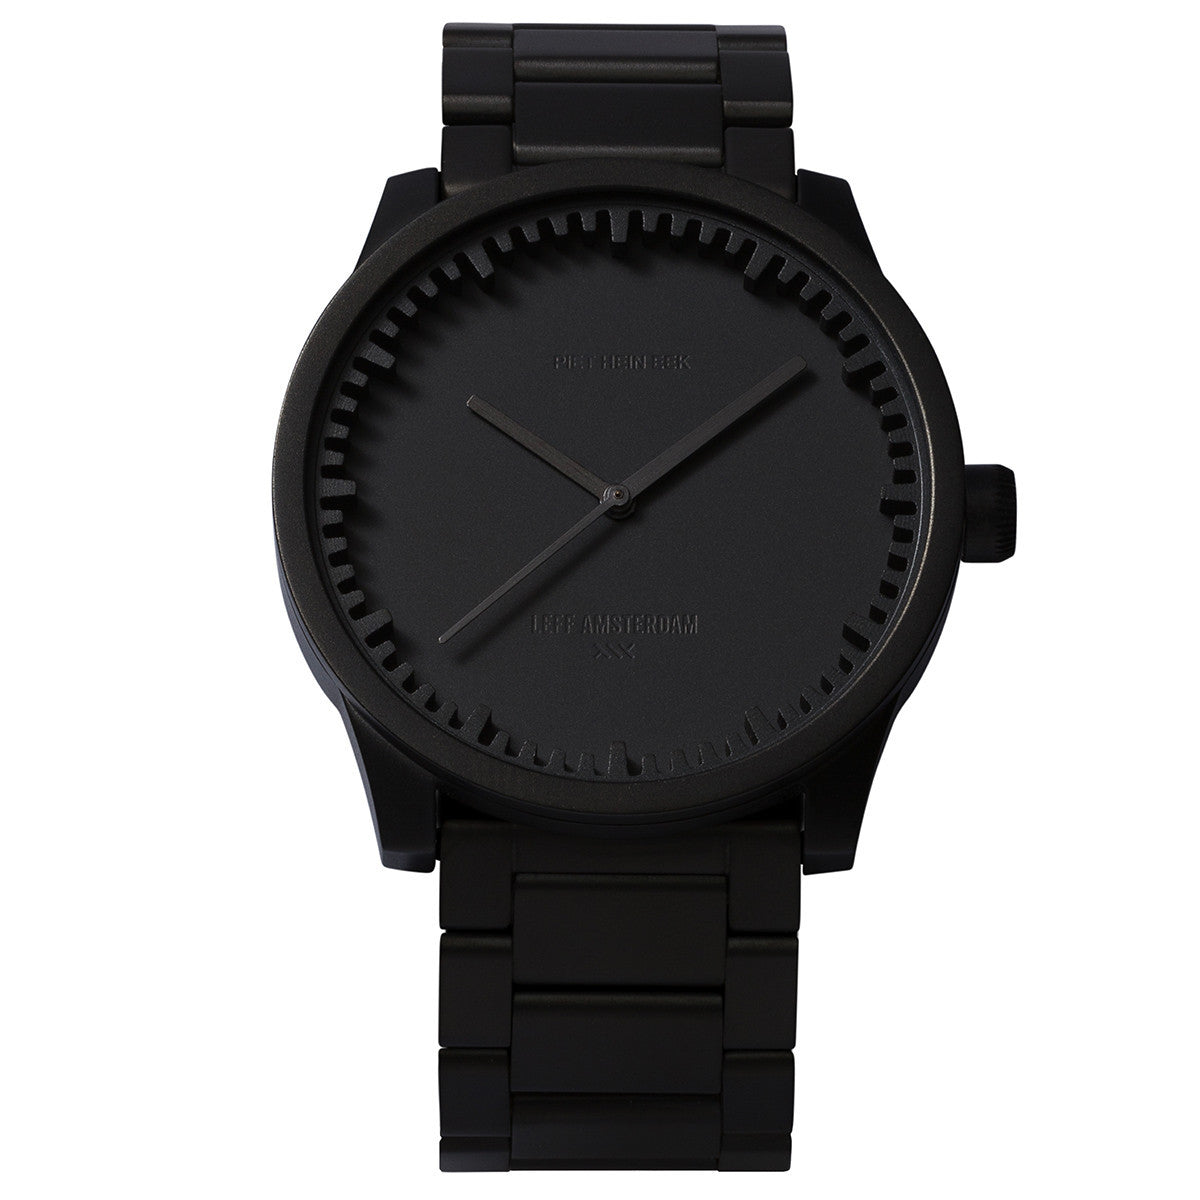 LEFF Amsterdam Tube Watch S38